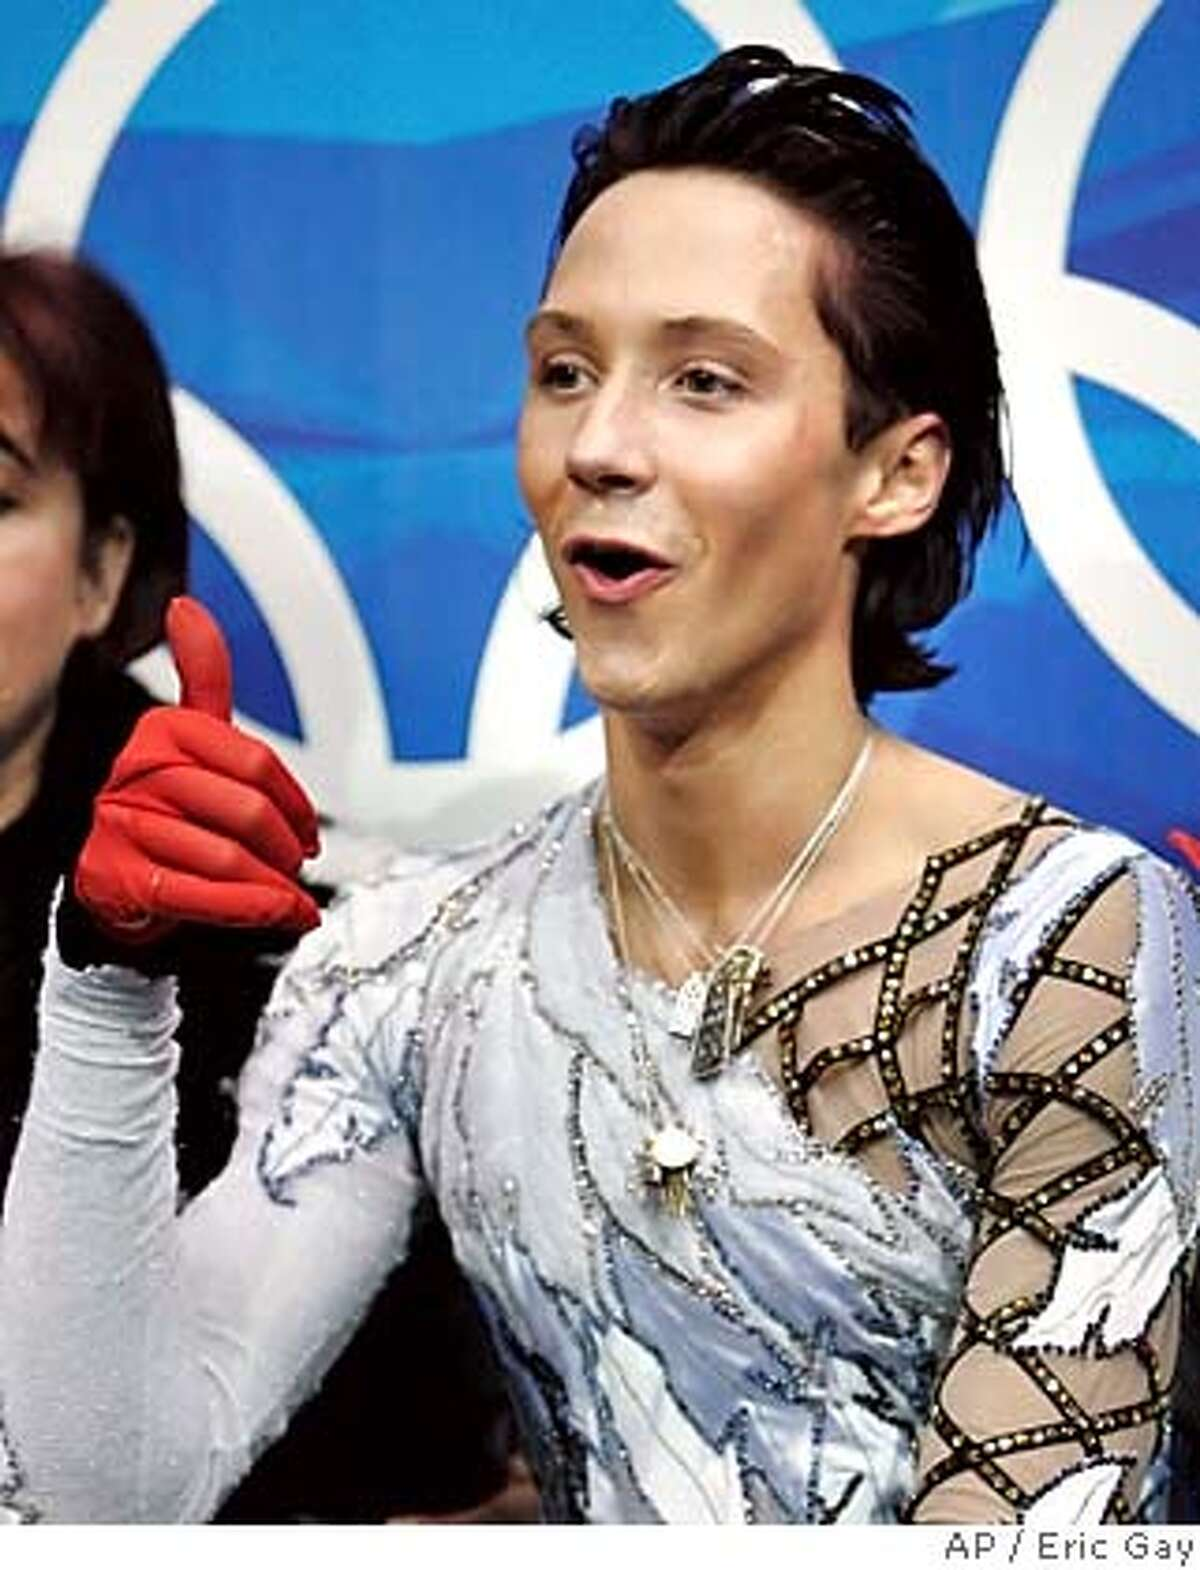 United States' Johnny Weir gives the thumbs up after receiving his scores for his performance in the Men's Figure Skating short program at the Turin 2006 Winter Olympic Games in Turin, Italy, Tuesday, Feb. 14, 2006. (AP Photo/Eric Gay)